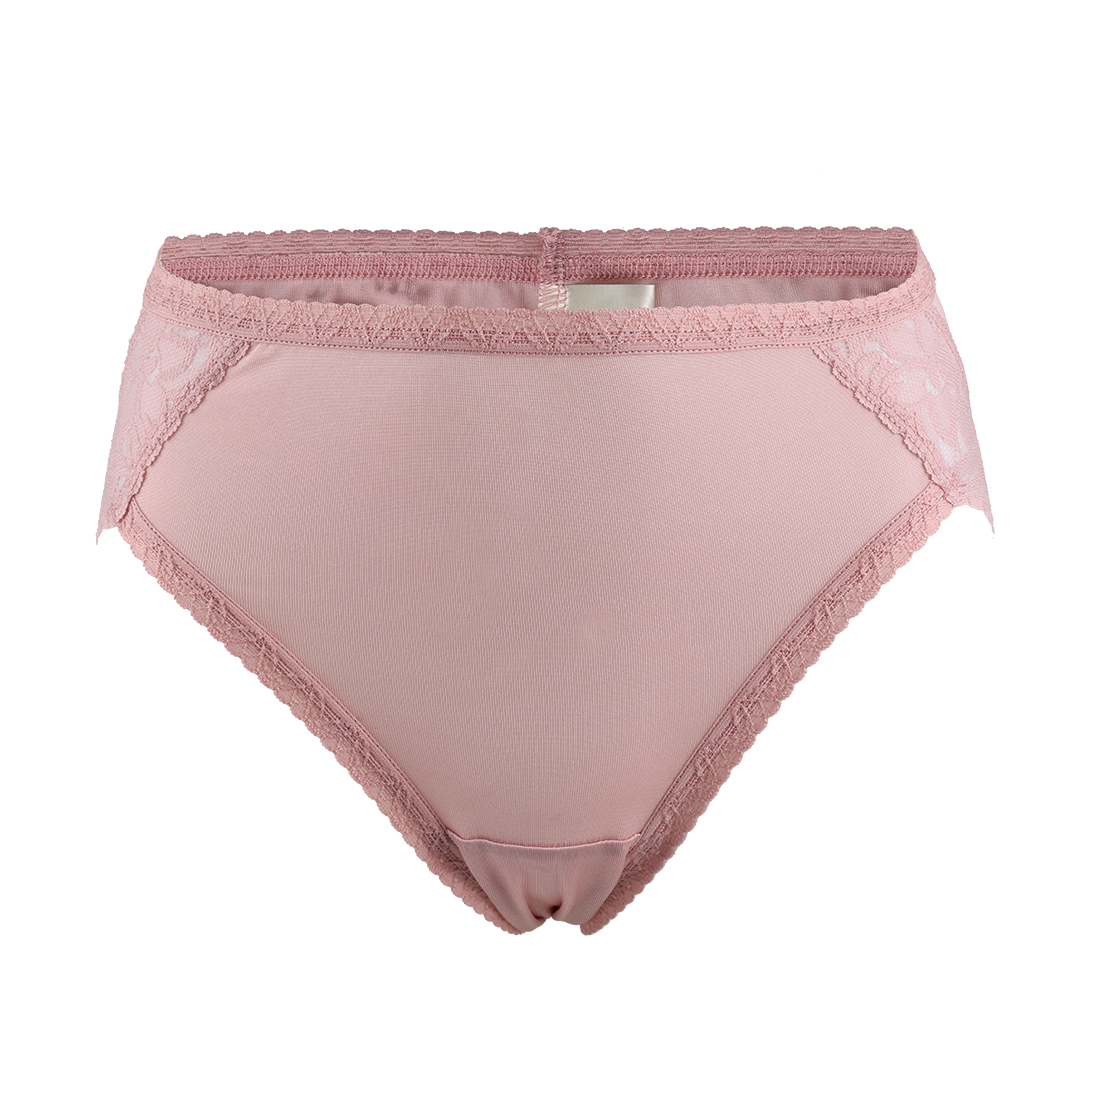 Women Mulberry Silk Laced Breathable Translucent Hi-Cut Panties Pink XLarge